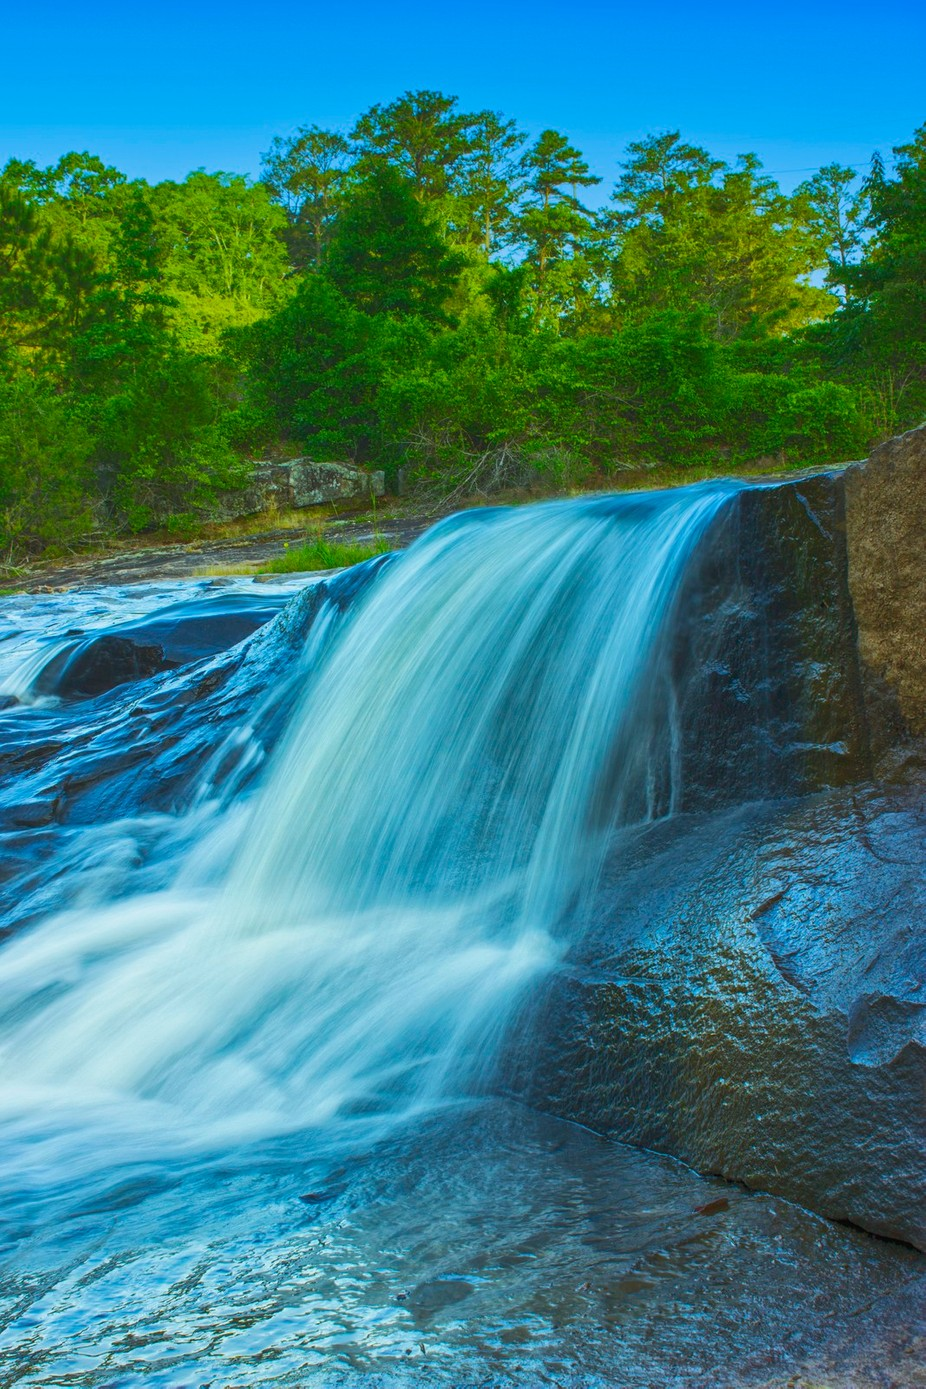 Photo taken at Flat Rock Park, in Columbus, Georgia, and converted into HDR.